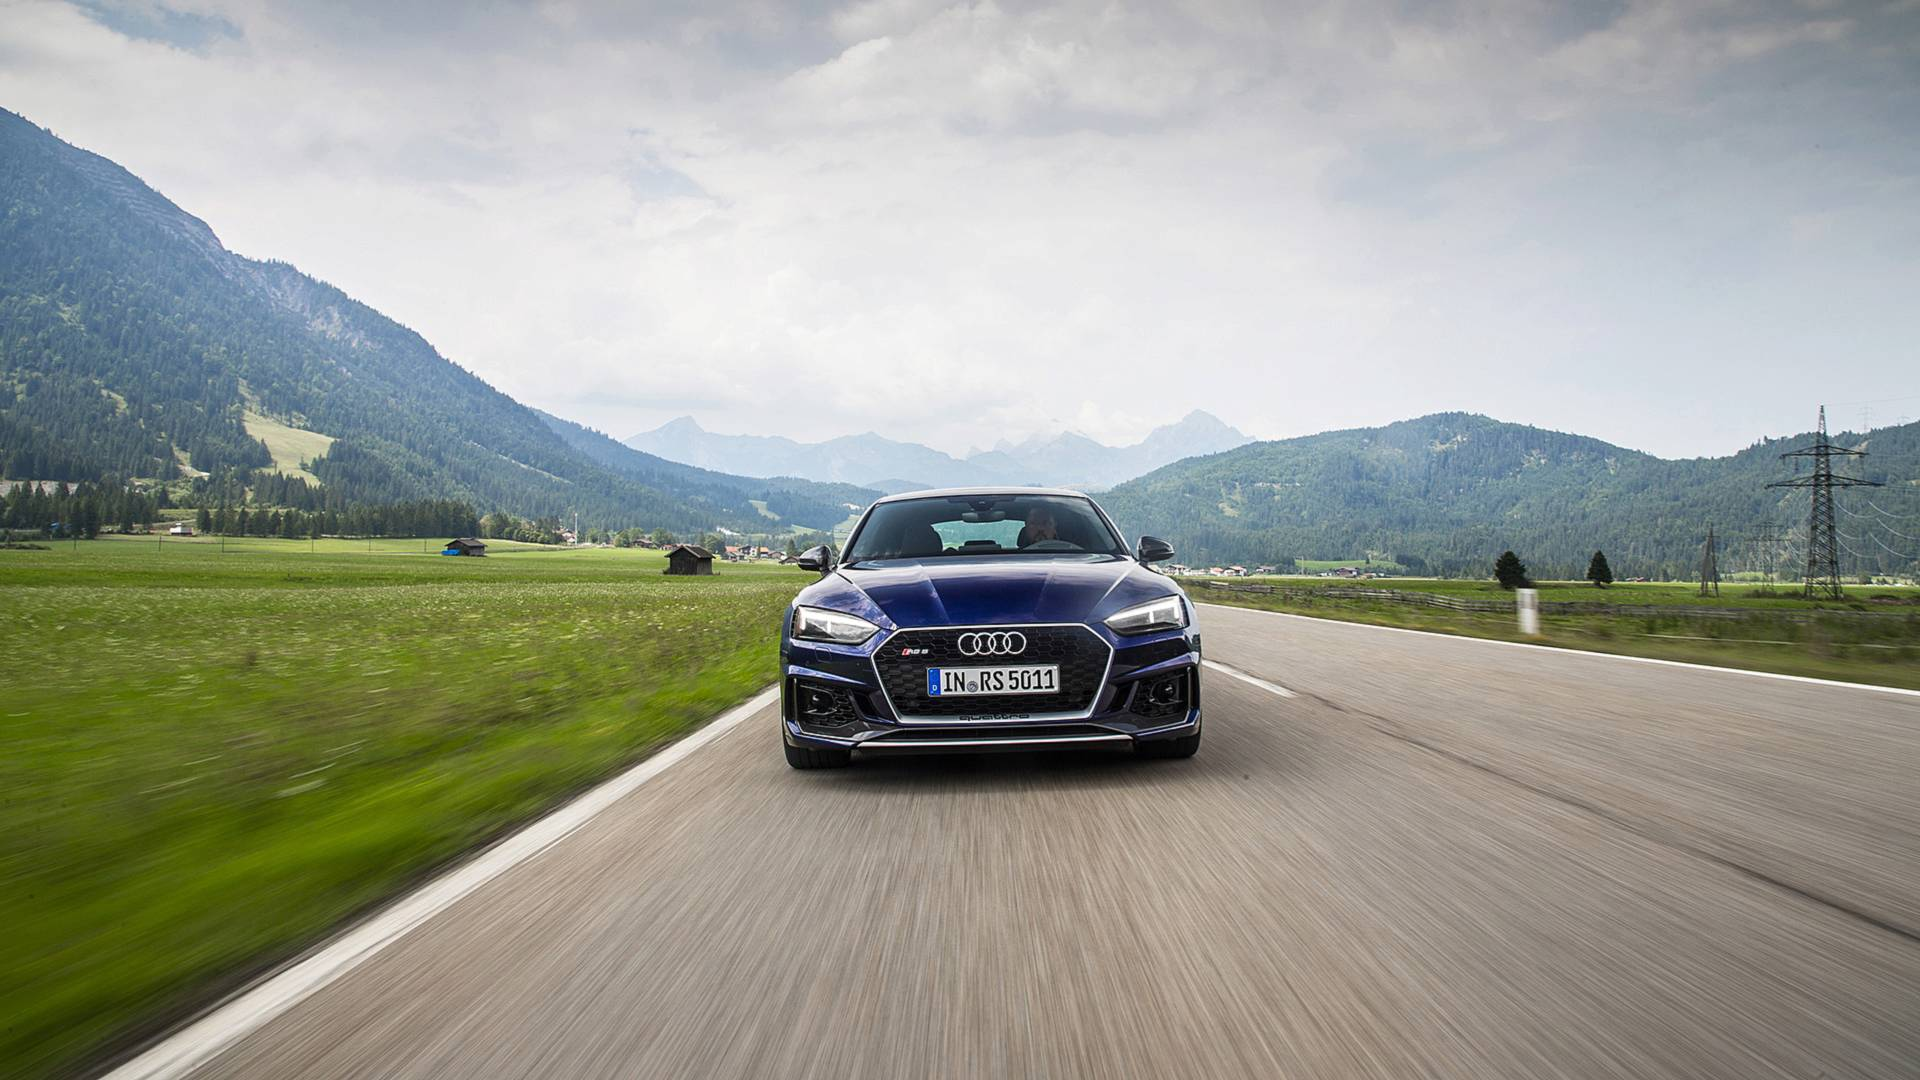 2019 Audi Rs 5 Sportback First Drive Adding Allure To The Audi Sport Lineup